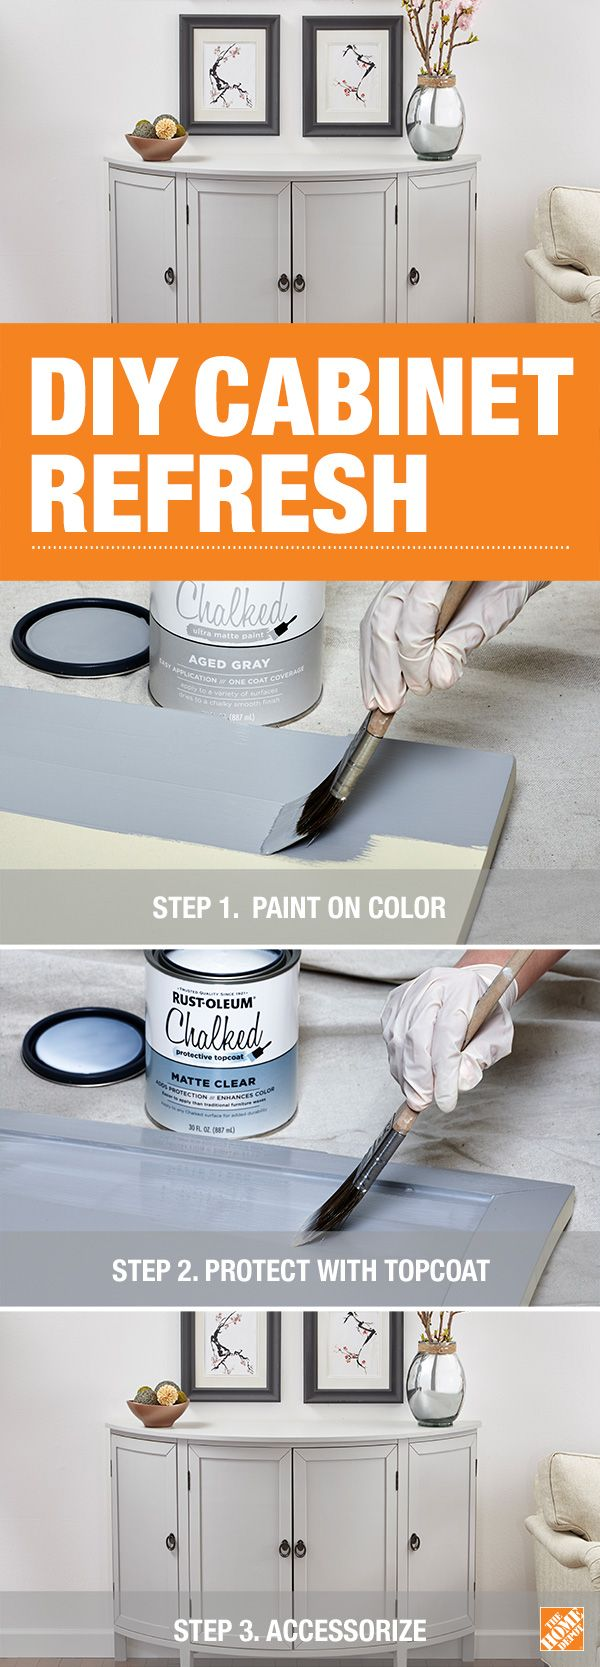 10 ideas about stain over paint on pinterest stair wall Chalk Paint Existing Cabinets for Bathroom Painting Cabinets with Chalk Paint